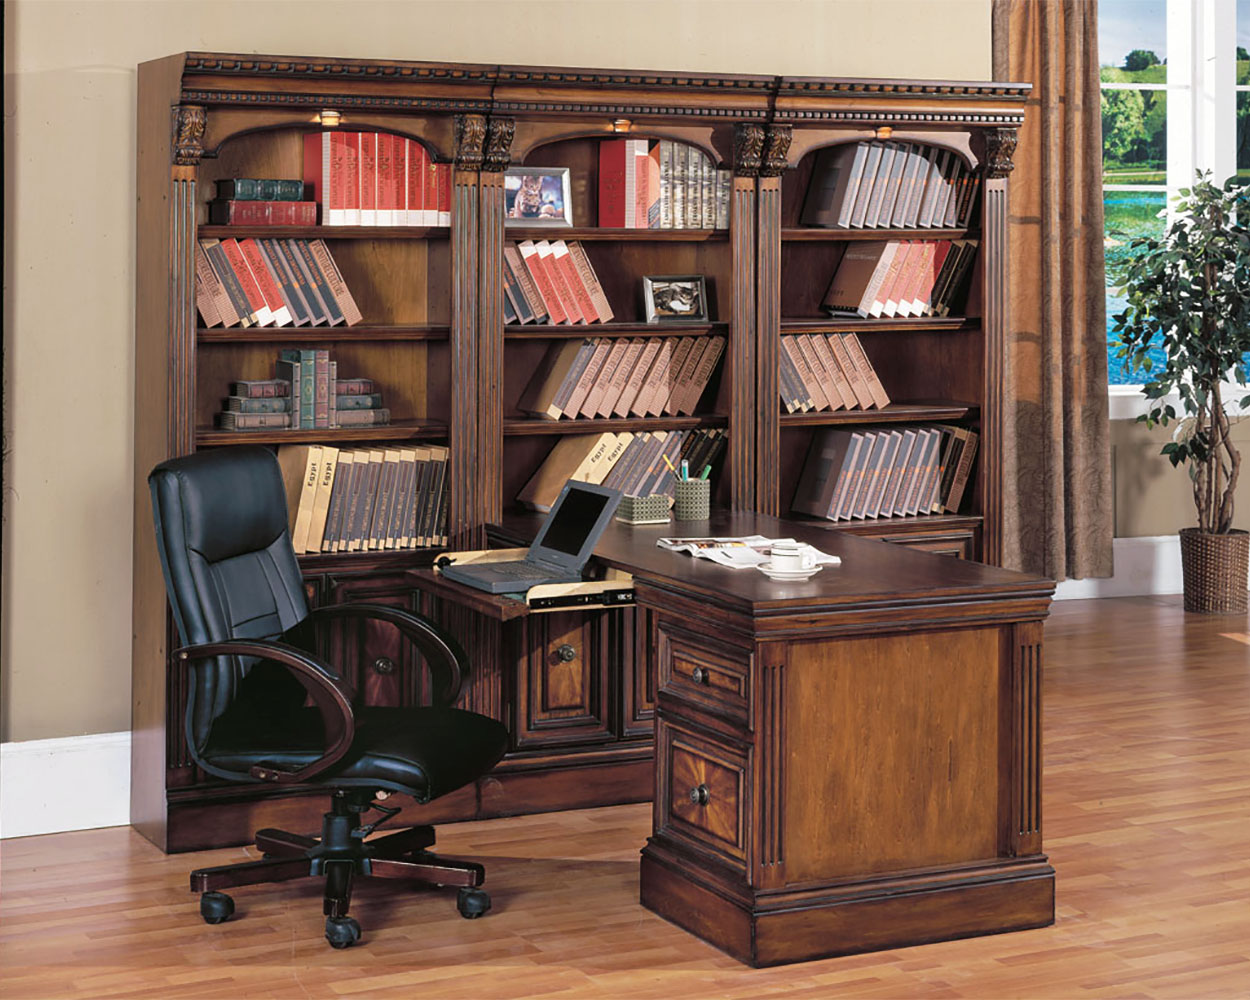 Hom Office Furniture: Parker House Huntington Home Office Furniture PH-HUN-3